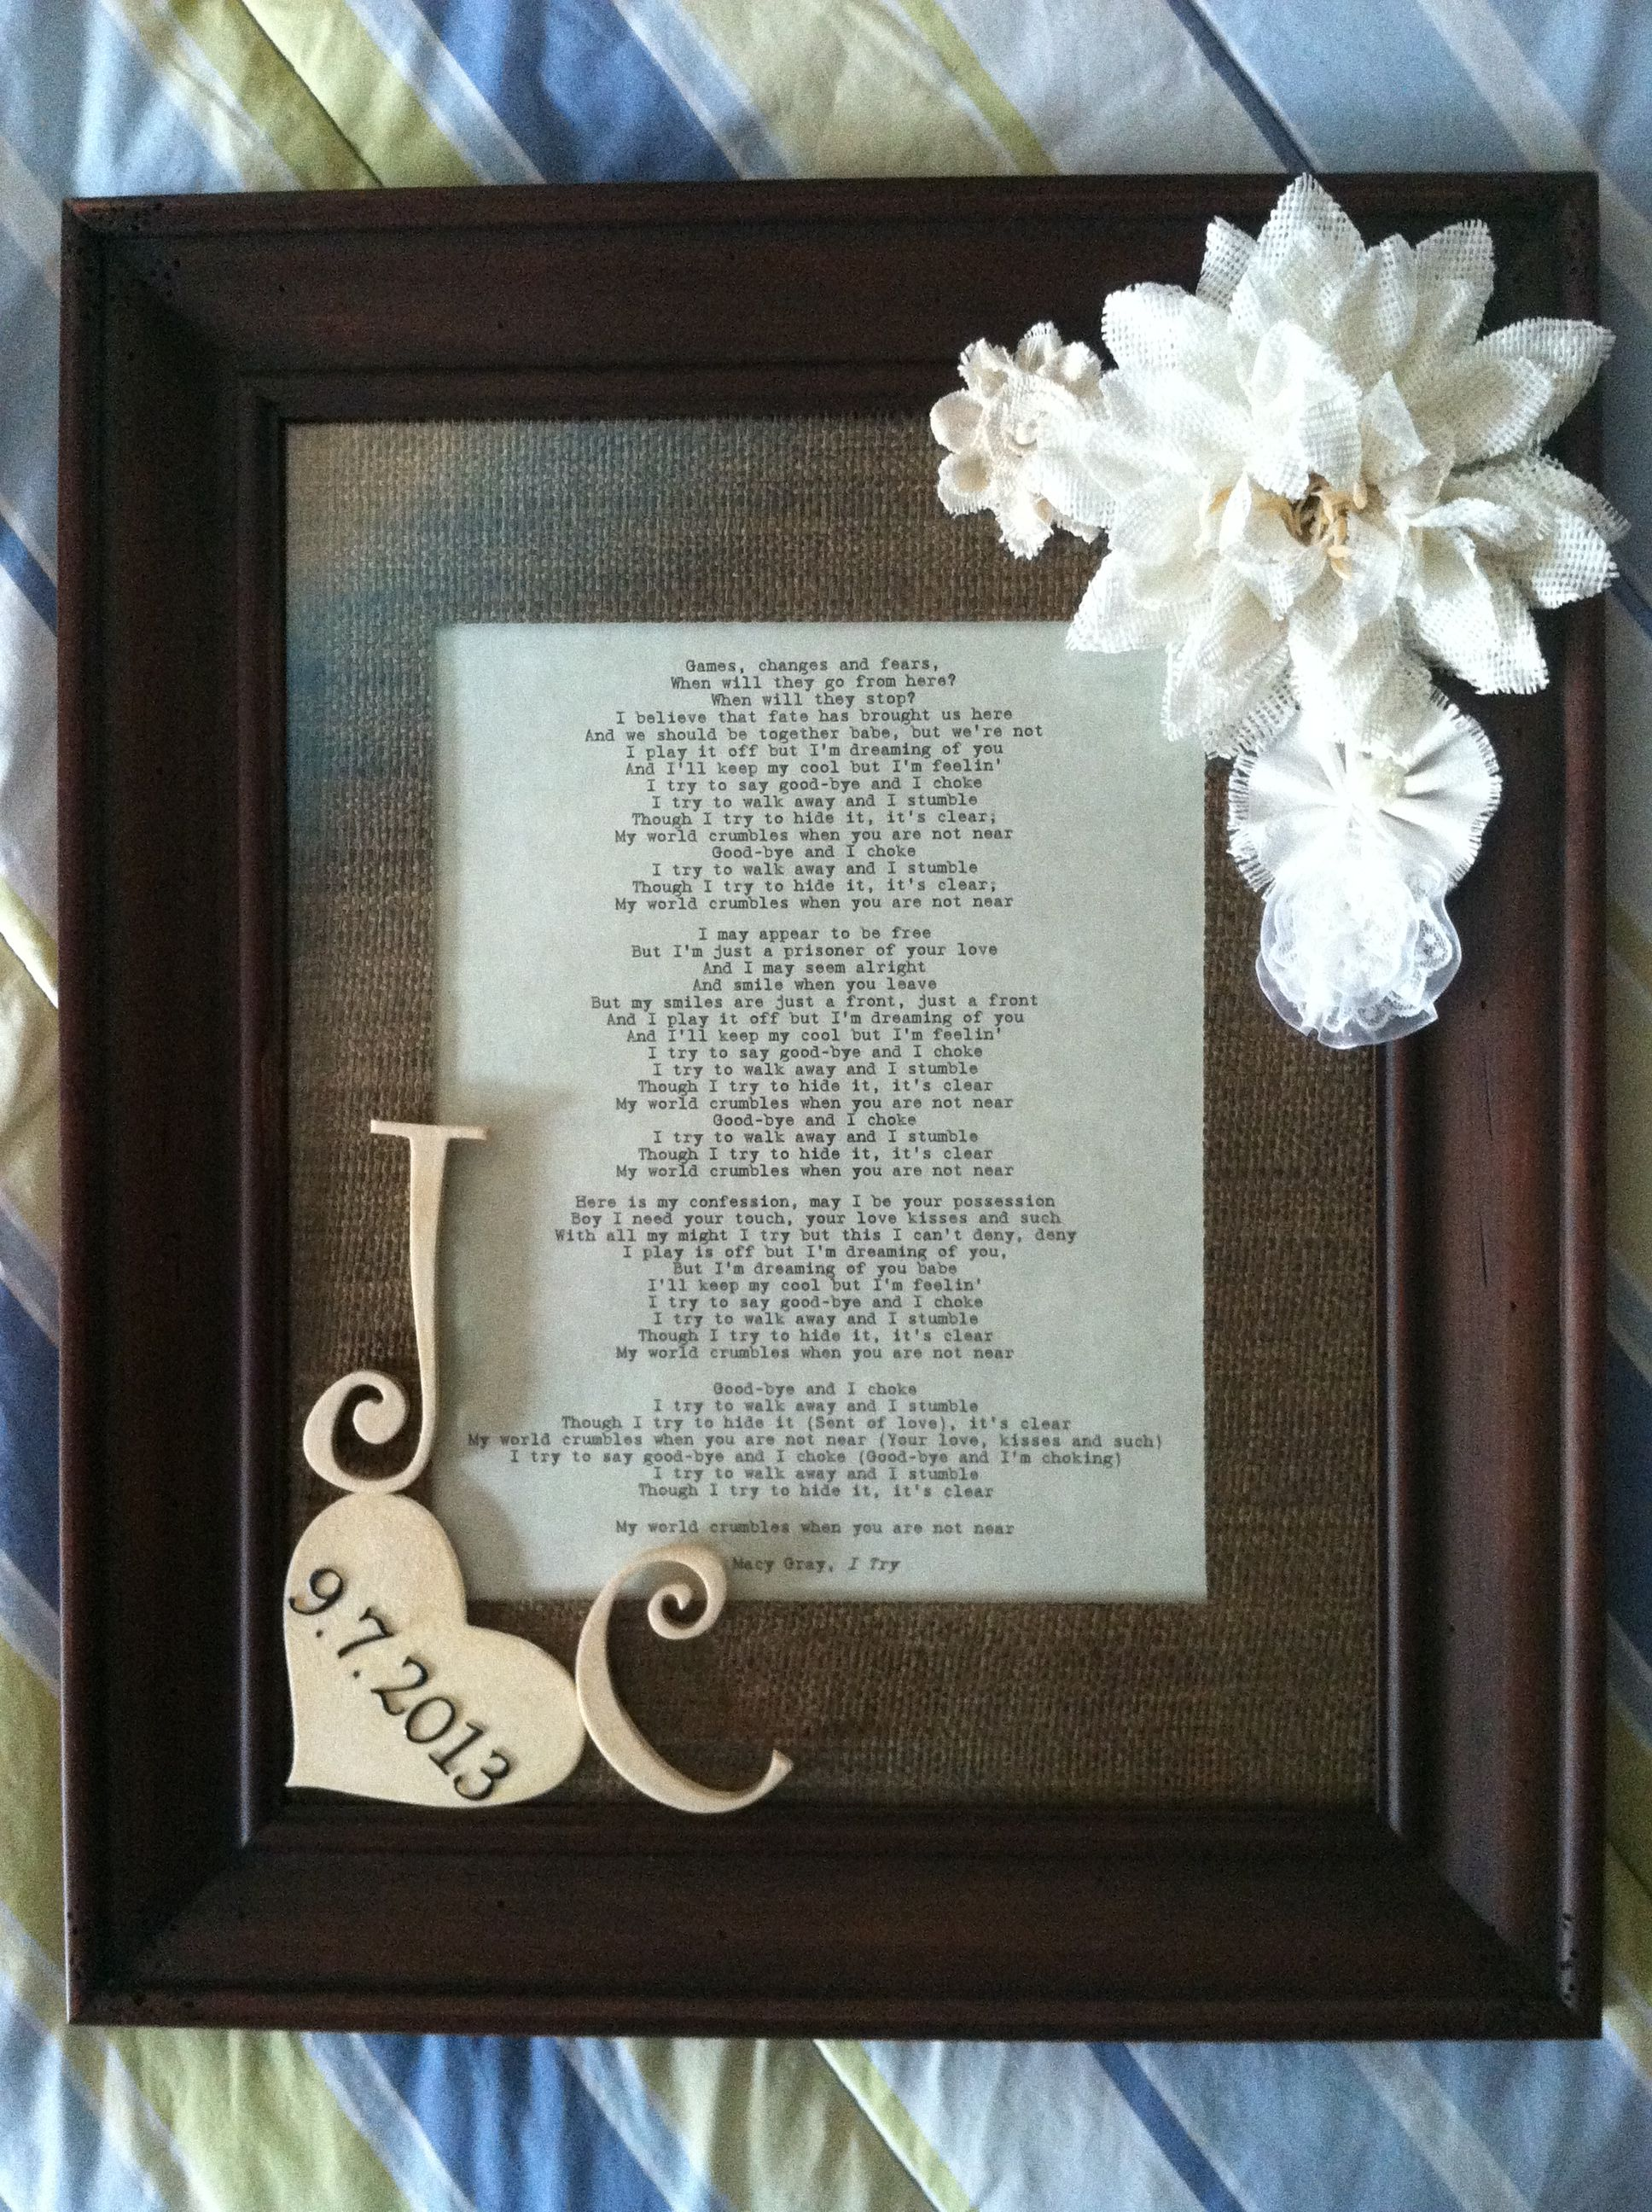 8X10 Resume Paper Classy Framed Wedding Song For A Burlap And Lace Themed Weddingall From .